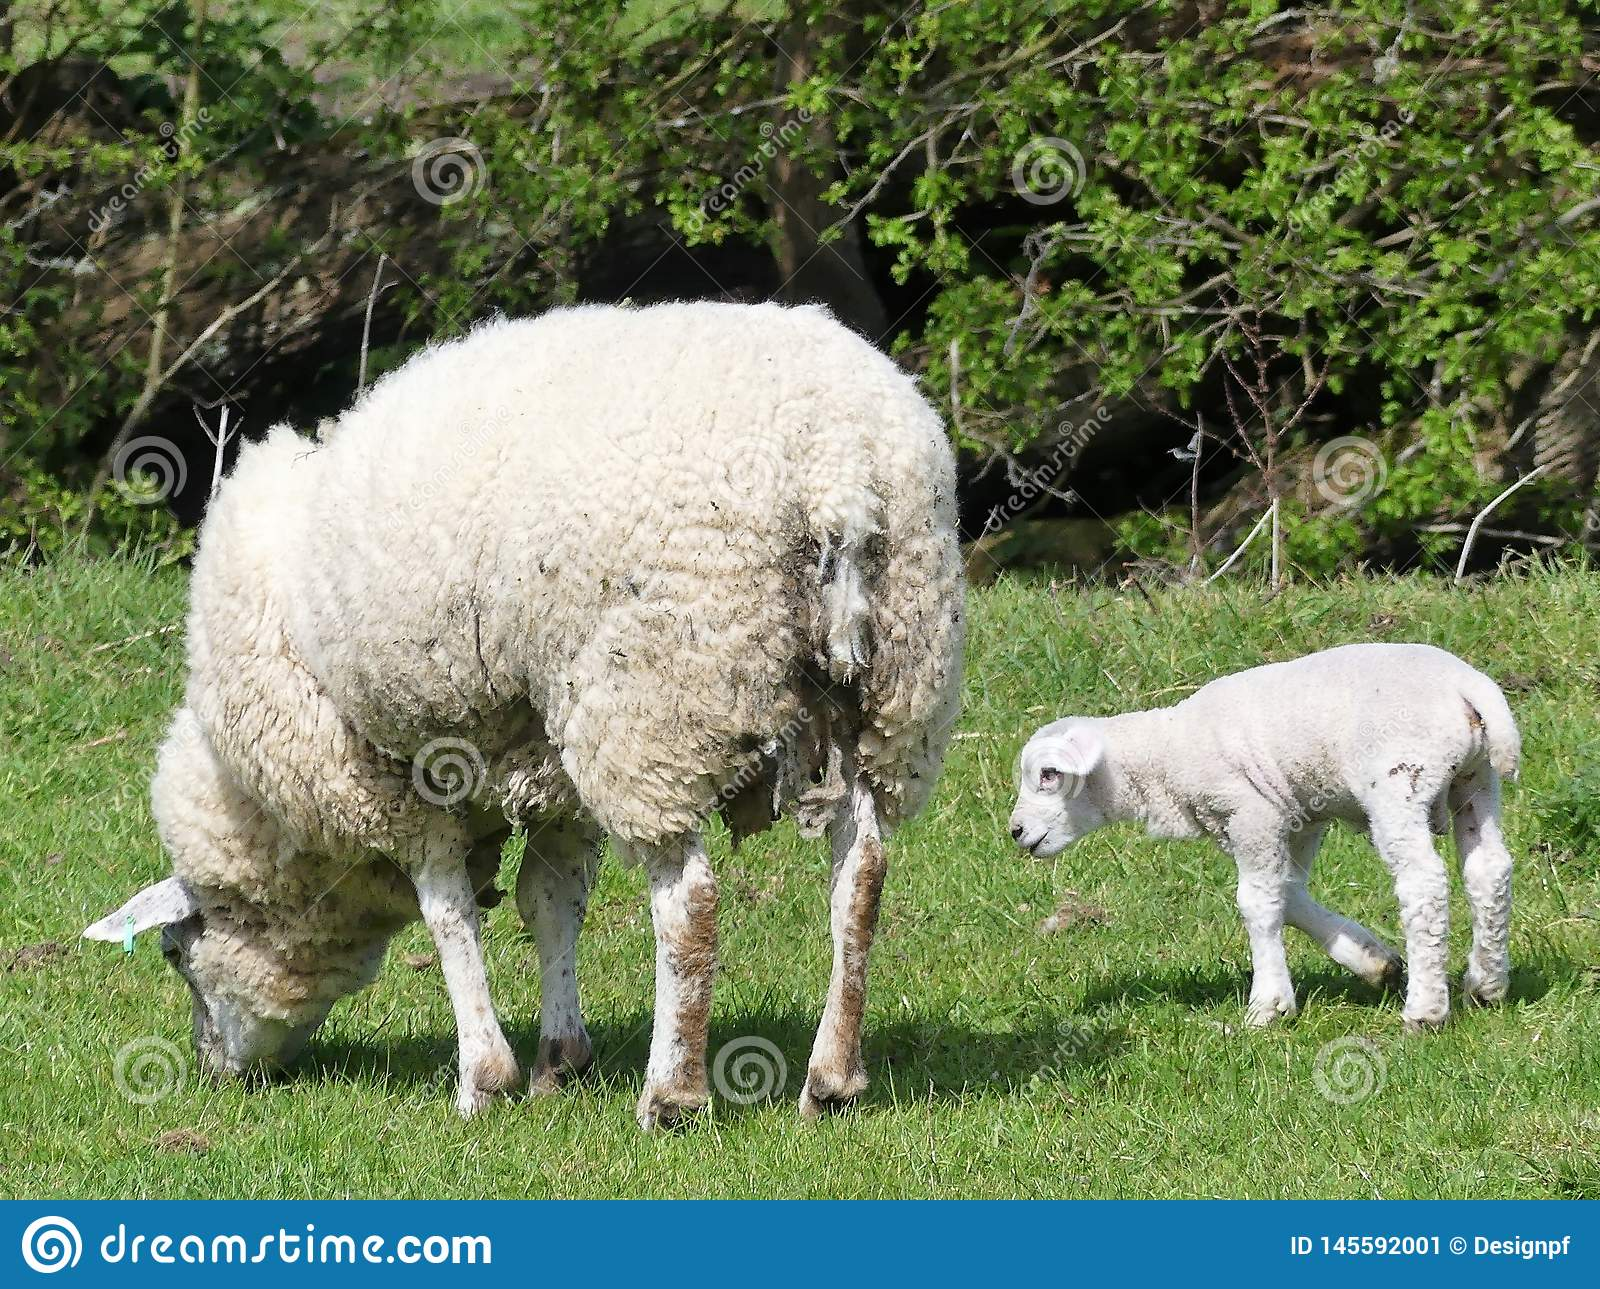 Ewe sheep and single lamb in field at springtime